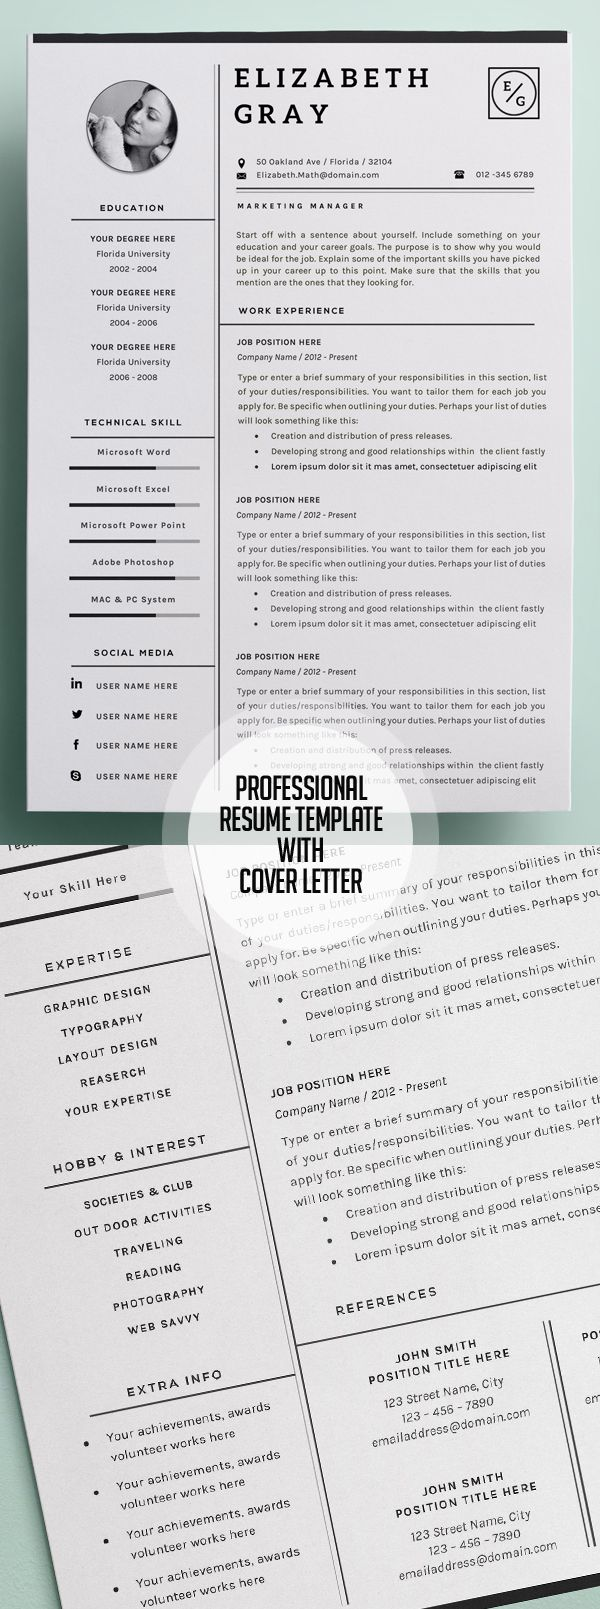 Picnictoimpeachus  Prepossessing  Resume Ideas On Pinterest  Resume Resume Templates And  With Marvelous Professional And Modern Resume Template With Page Cover Cvtemplate With Appealing What Is Objective In Resume Also Product Manager Resumes In Addition Word Doc Resume Template And Resume Creator Online As Well As Cosmetology Student Resume Additionally Hr Specialist Resume From Pinterestcom With Picnictoimpeachus  Marvelous  Resume Ideas On Pinterest  Resume Resume Templates And  With Appealing Professional And Modern Resume Template With Page Cover Cvtemplate And Prepossessing What Is Objective In Resume Also Product Manager Resumes In Addition Word Doc Resume Template From Pinterestcom